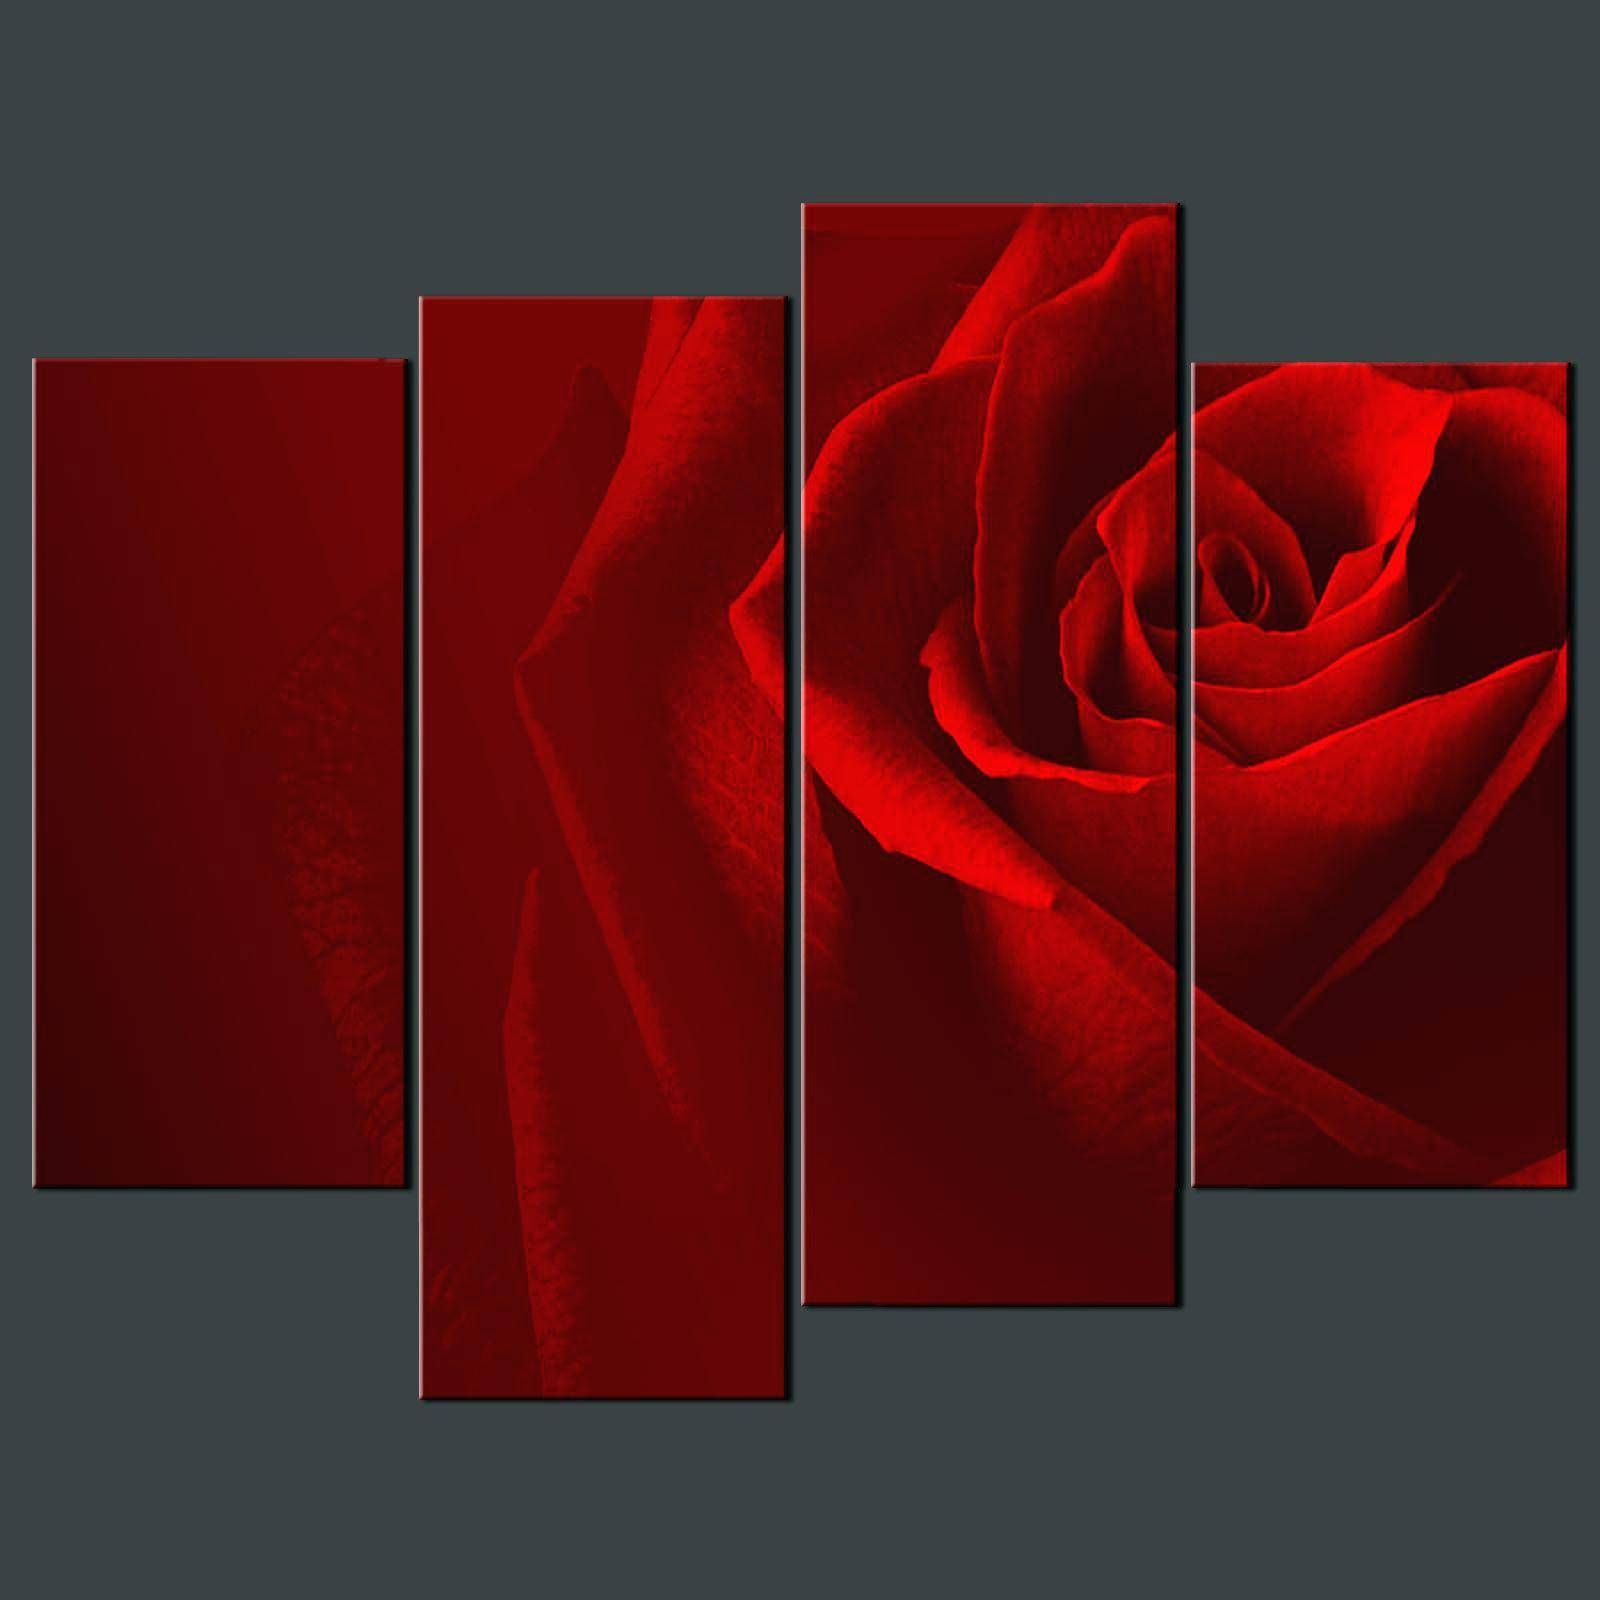 Wall Arts ~ Metal Wall Art Red Flowers Red Metal Wall Art Decor Intended For Most Popular Red Metal Wall Art (View 19 of 20)